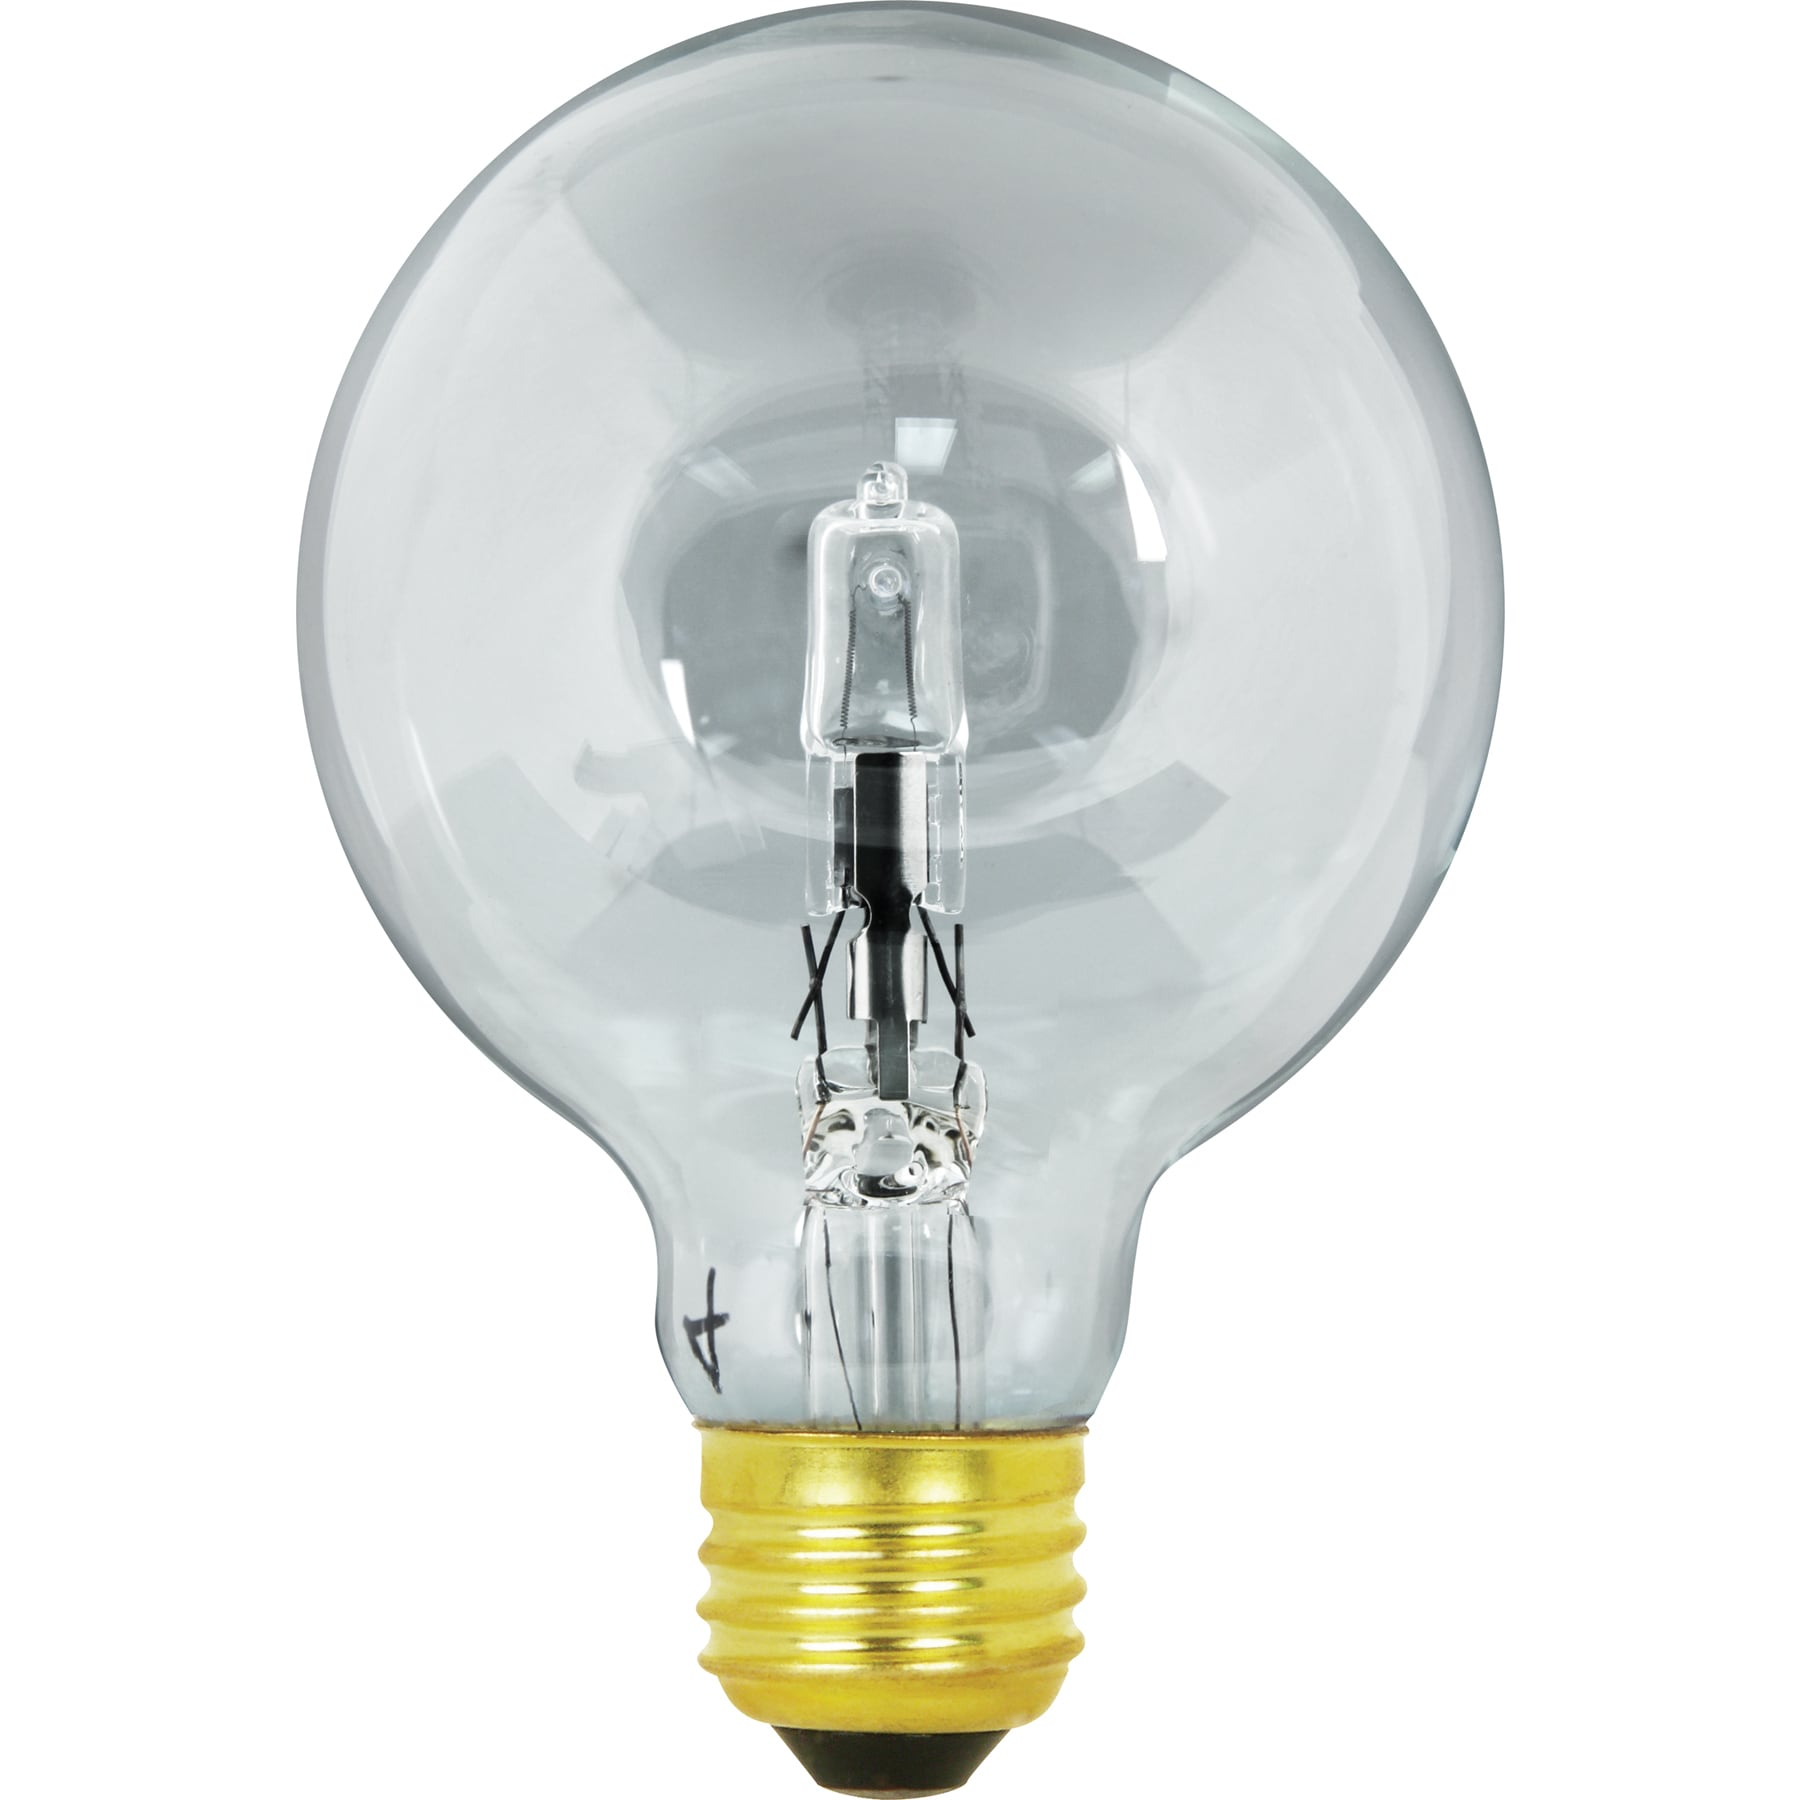 FEIT Electric Q40G25 40 Watt Clear Instant On Energy Save...